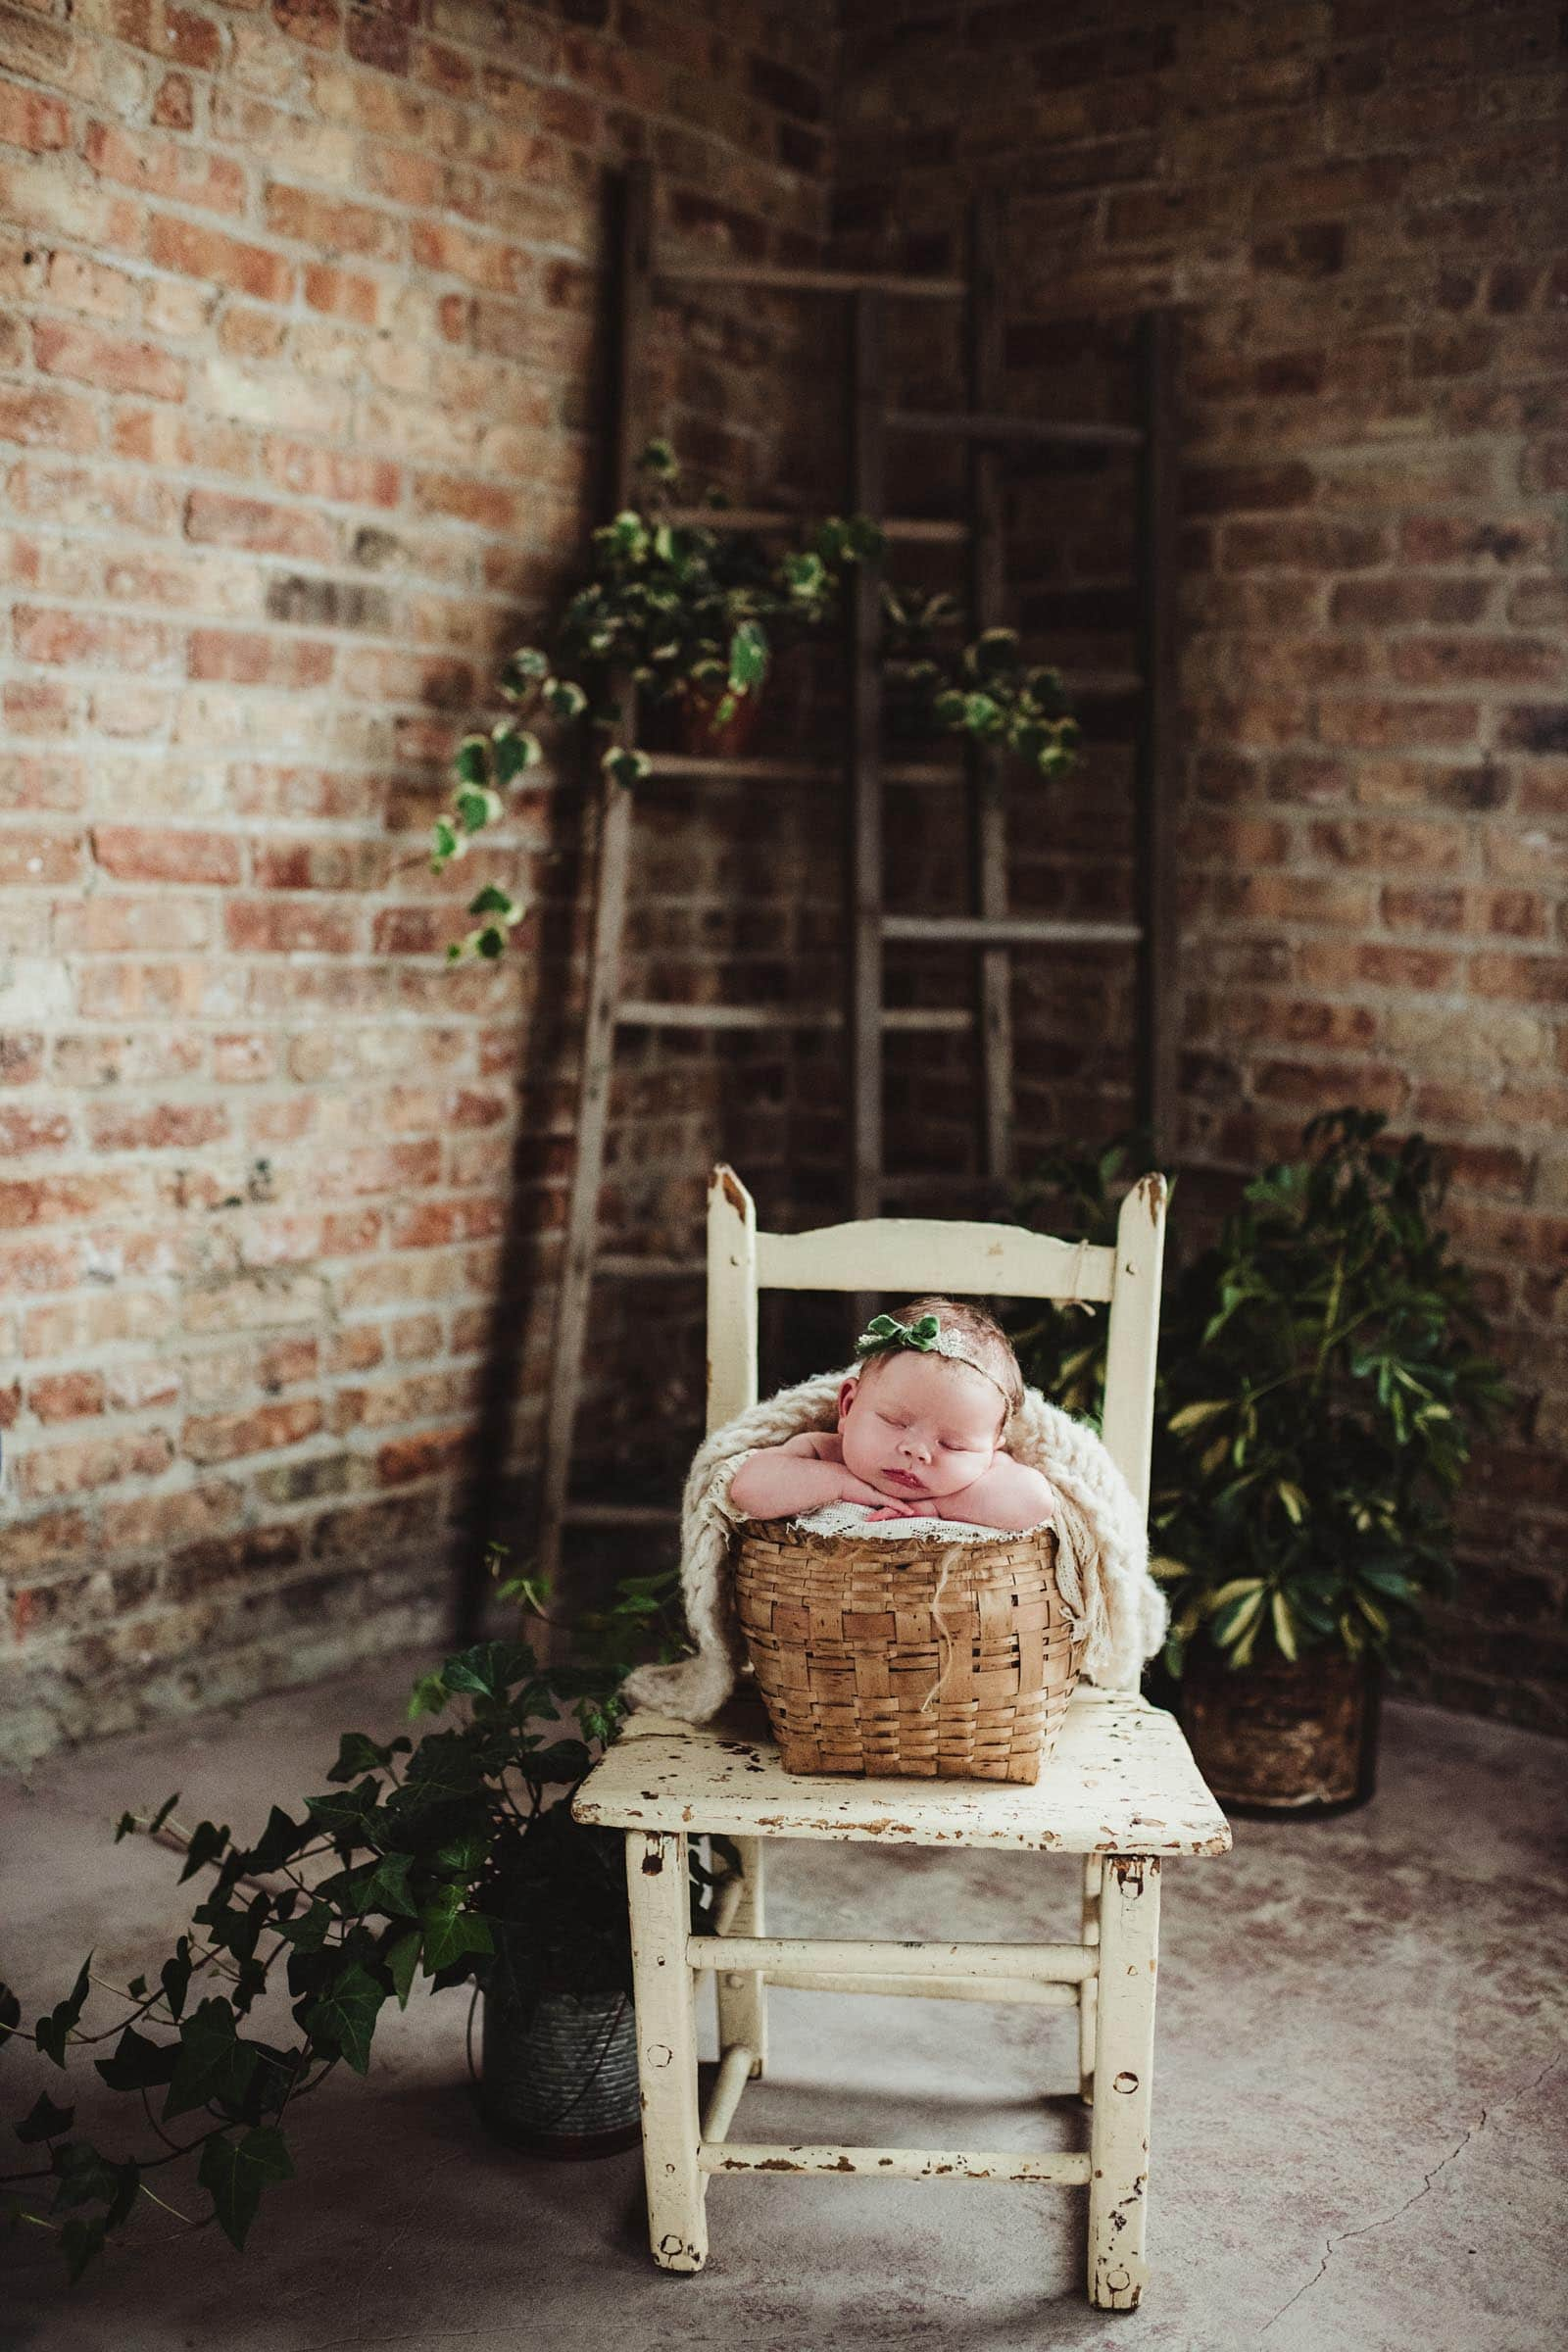 Newborn in Basket on Chair